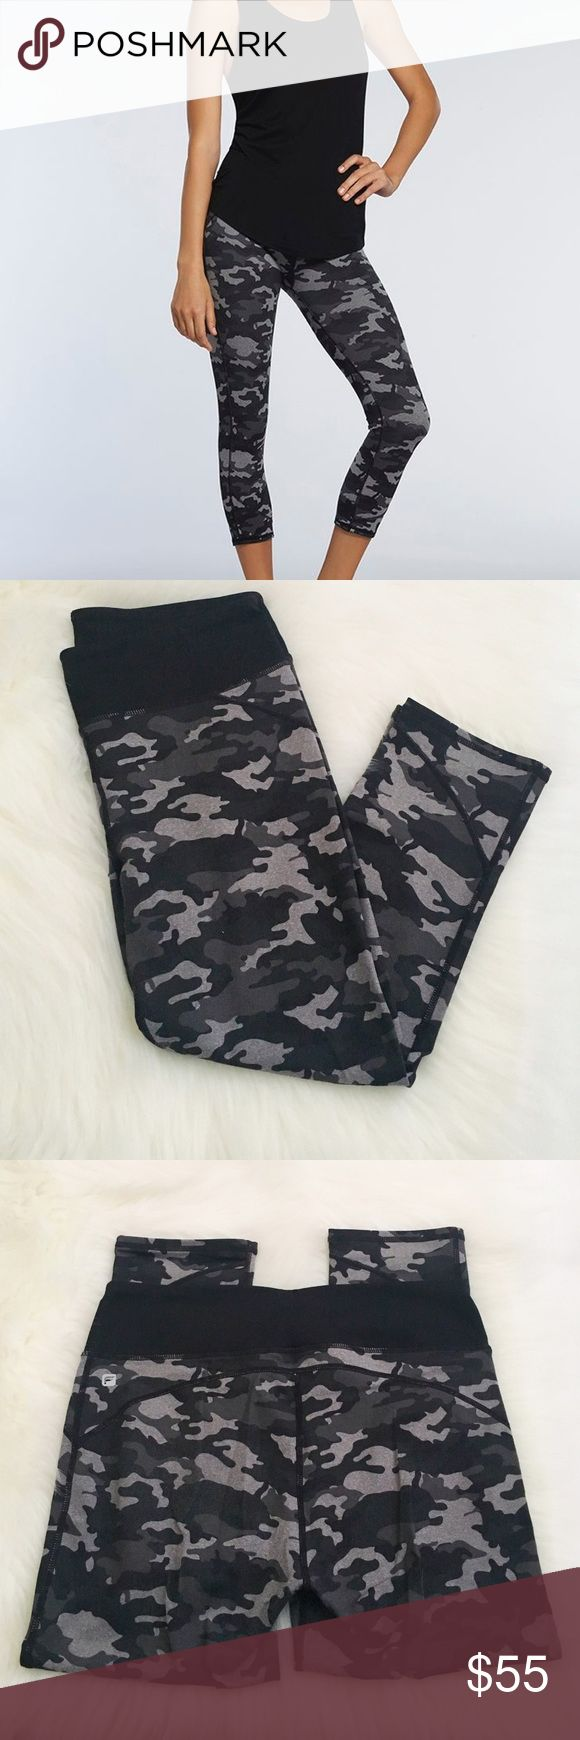 Fabletics Crops in army print Fabletics Crops in a gray & black Camo print. Excellent pre-worn condition, no pilling. No modeling/trades. Fabletics Pants Leggings